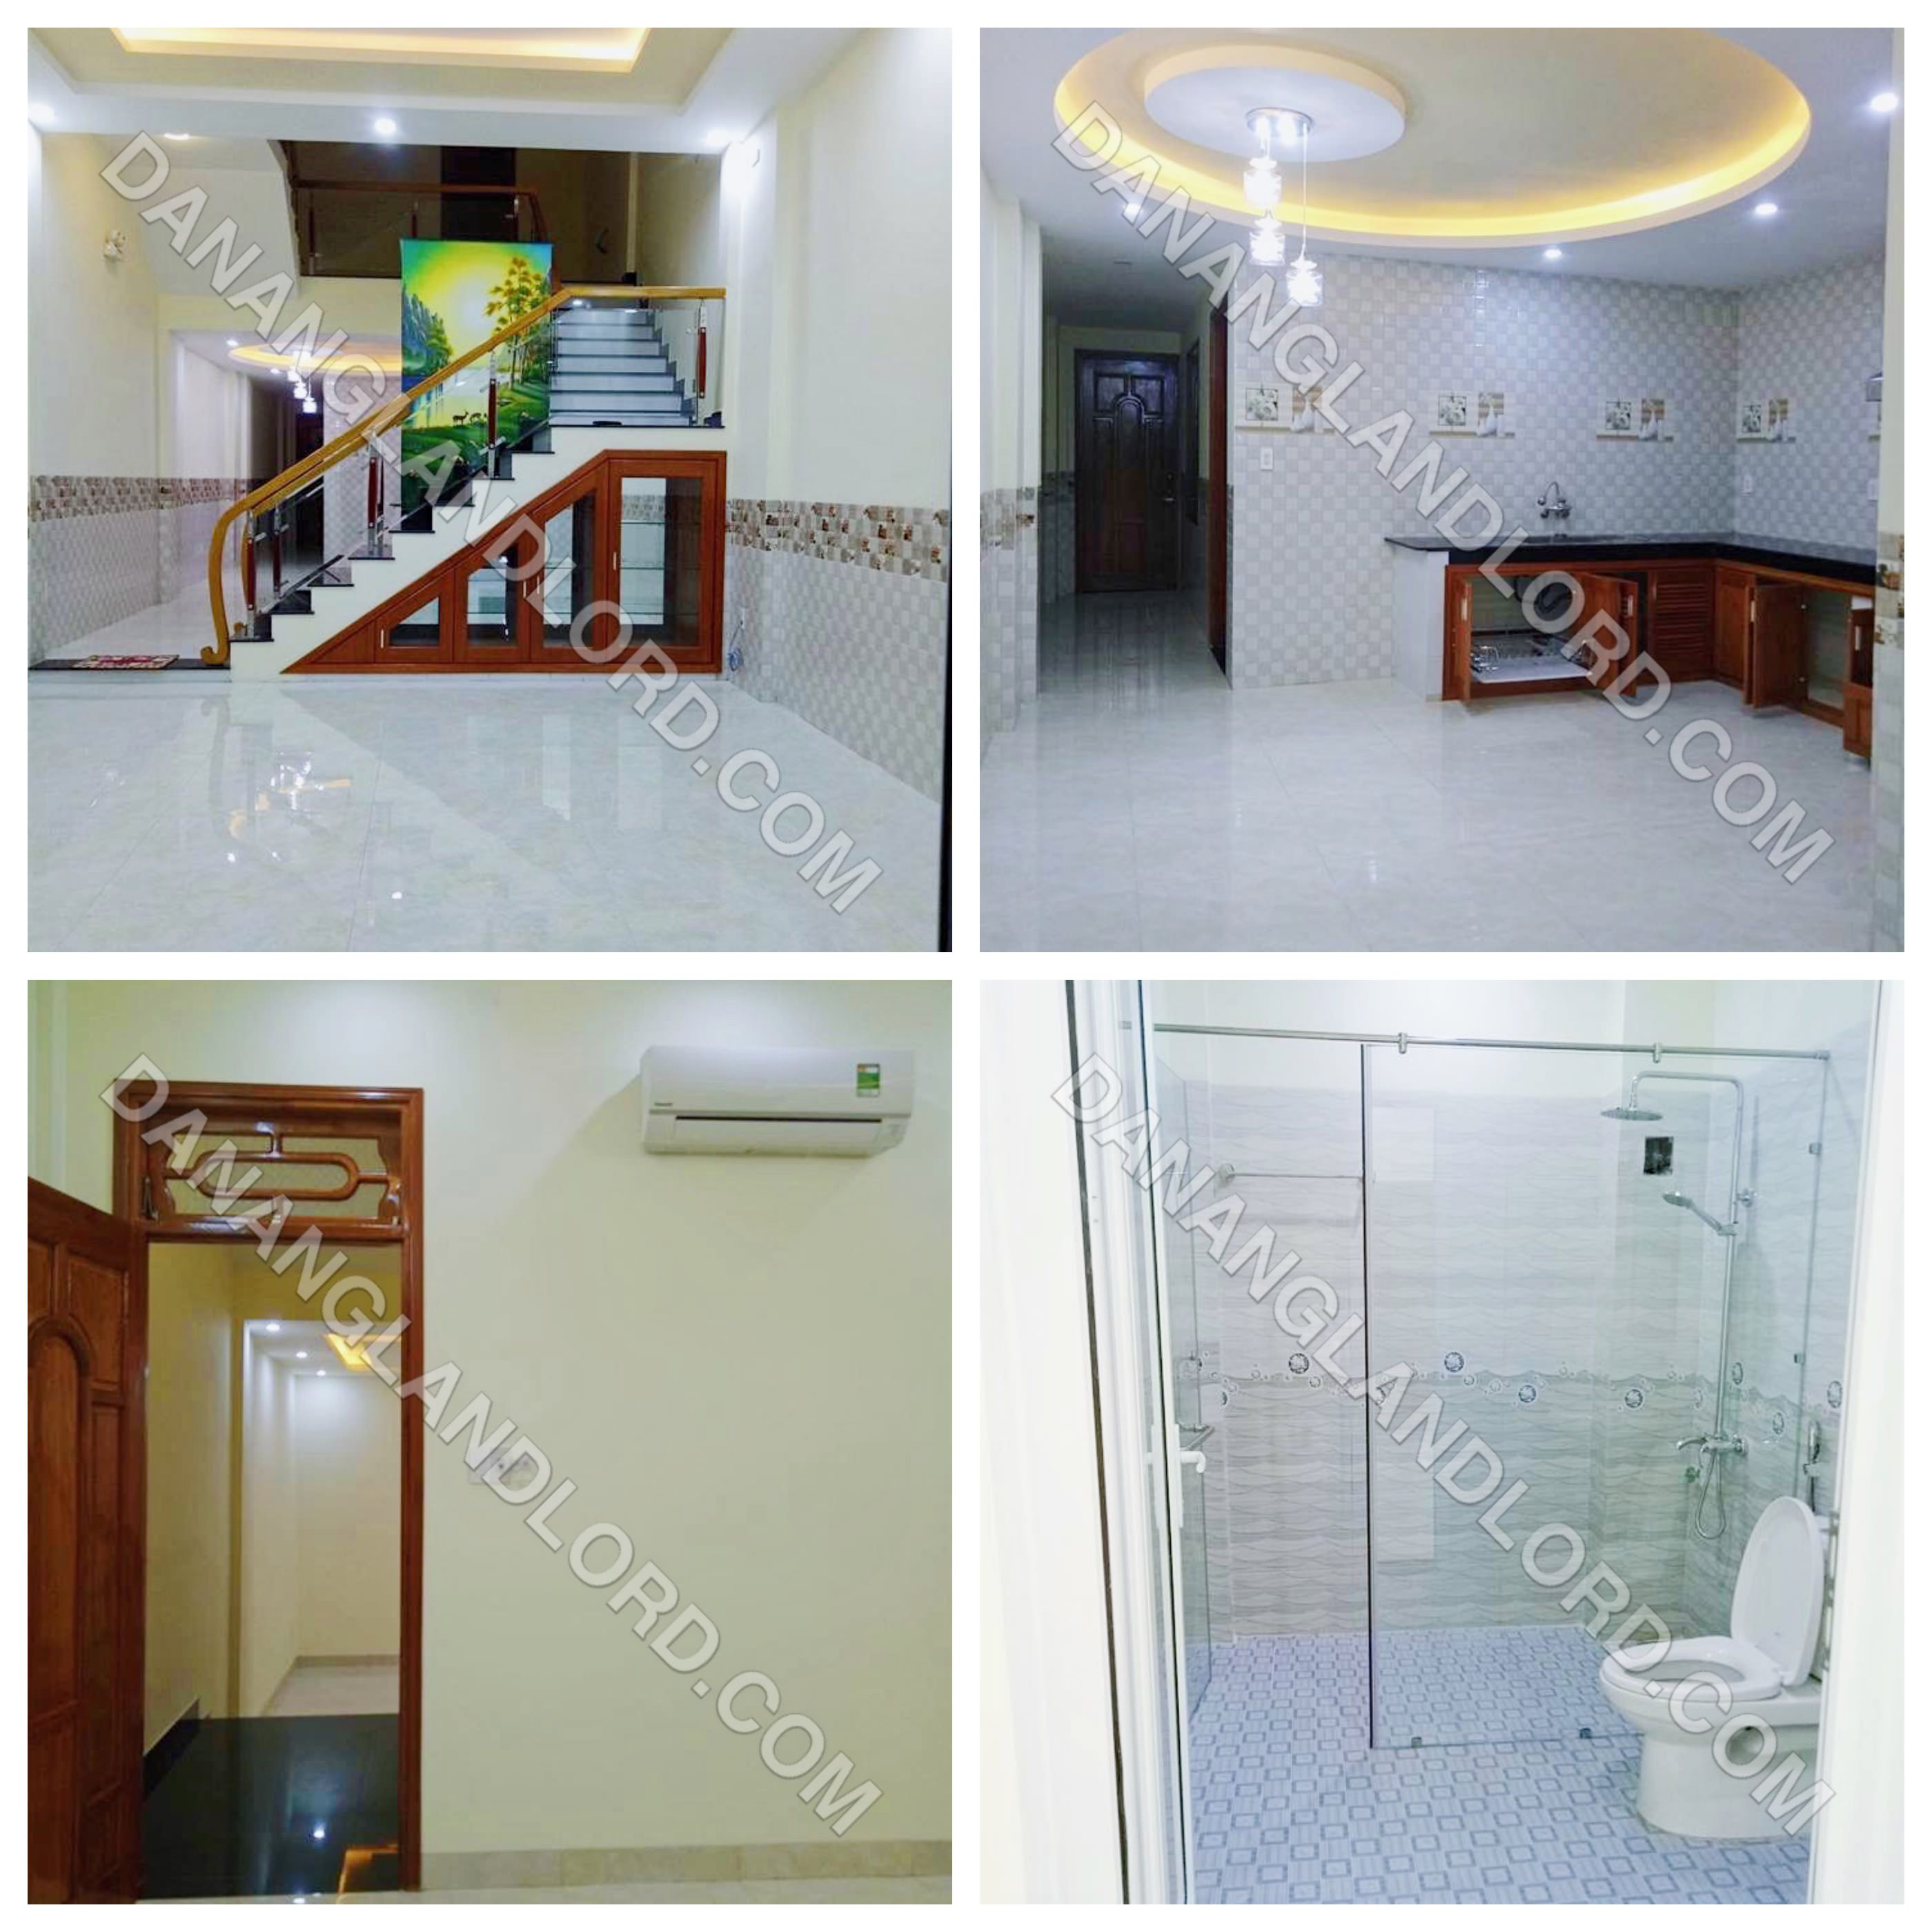 The spacious house with 3 bedrooms near An Thuong area – N7C1